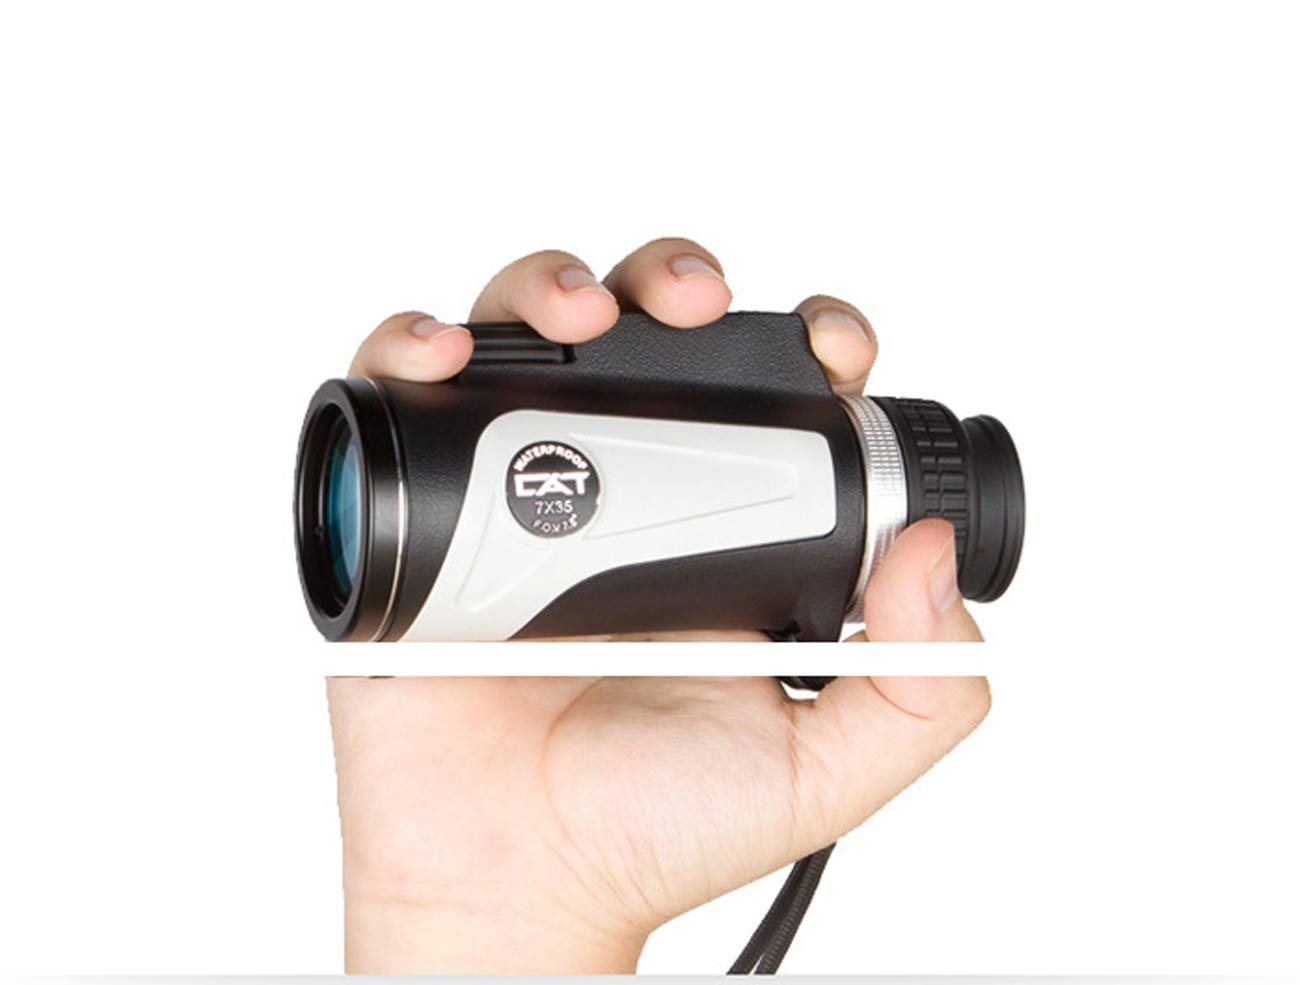 XUEXUE Monocular Telescope Night Vision Rangefinder 7X35 and Compass HD Waterproof Small Compact Mobile Phone Photographing Telescope for Kids Adult Outdoor Traveling Astronomy Birdwatching by XUEXUE